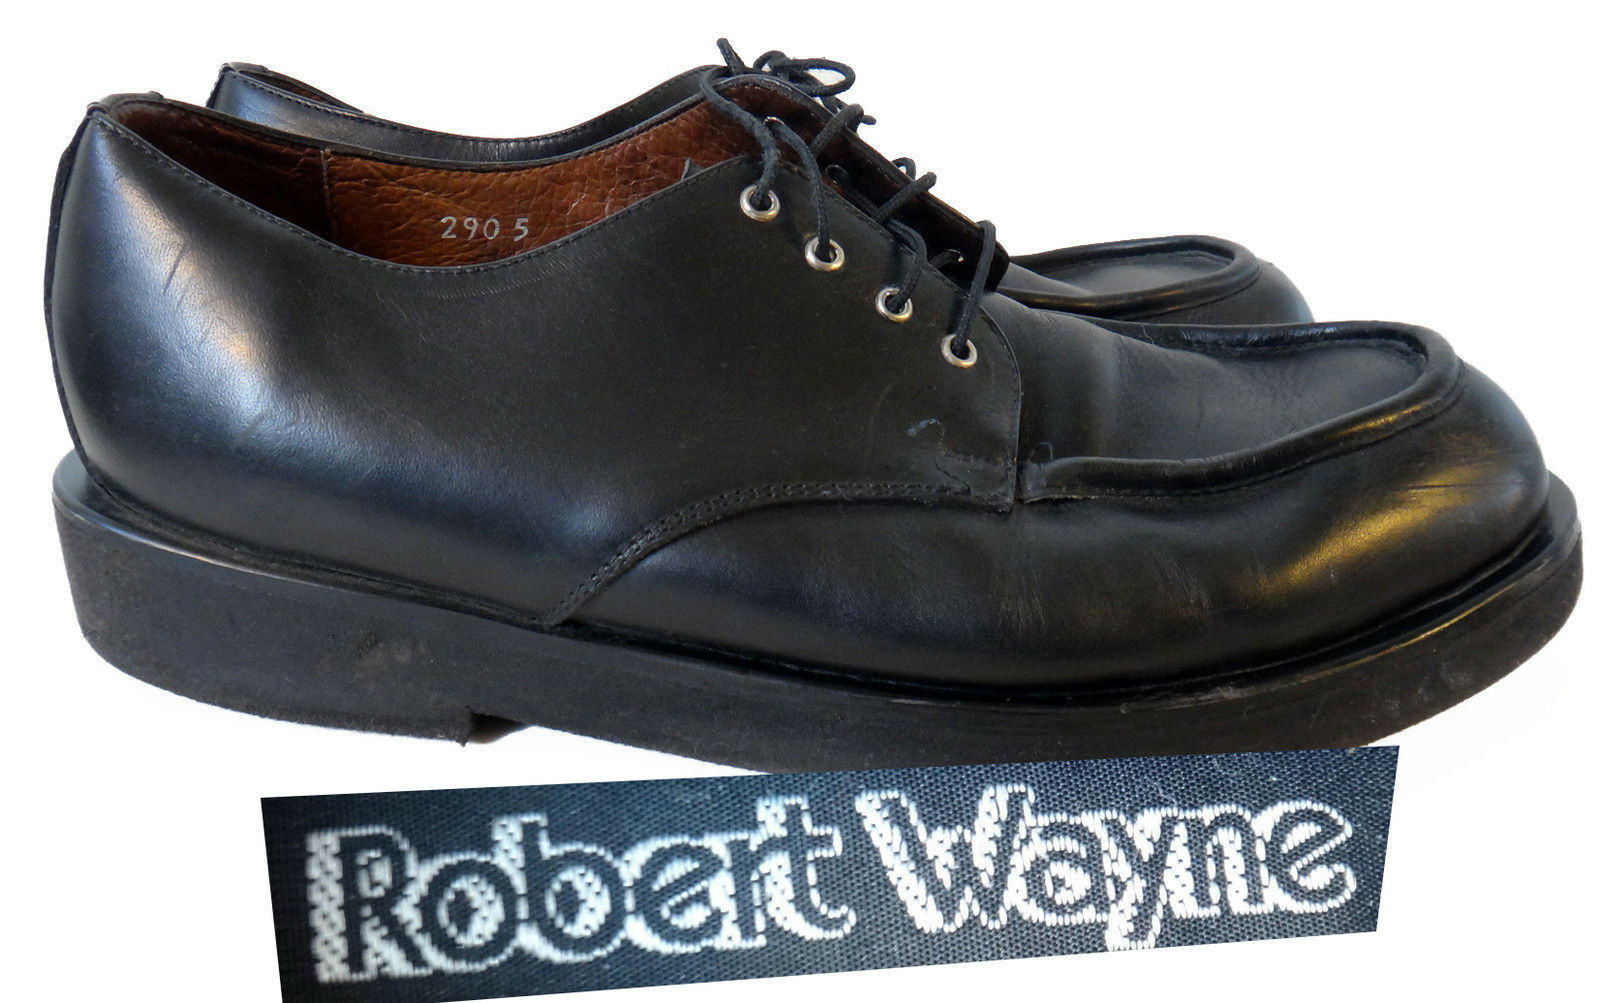 Robert Wayne classic loafer black 10.5 round toe black leather lace tie work